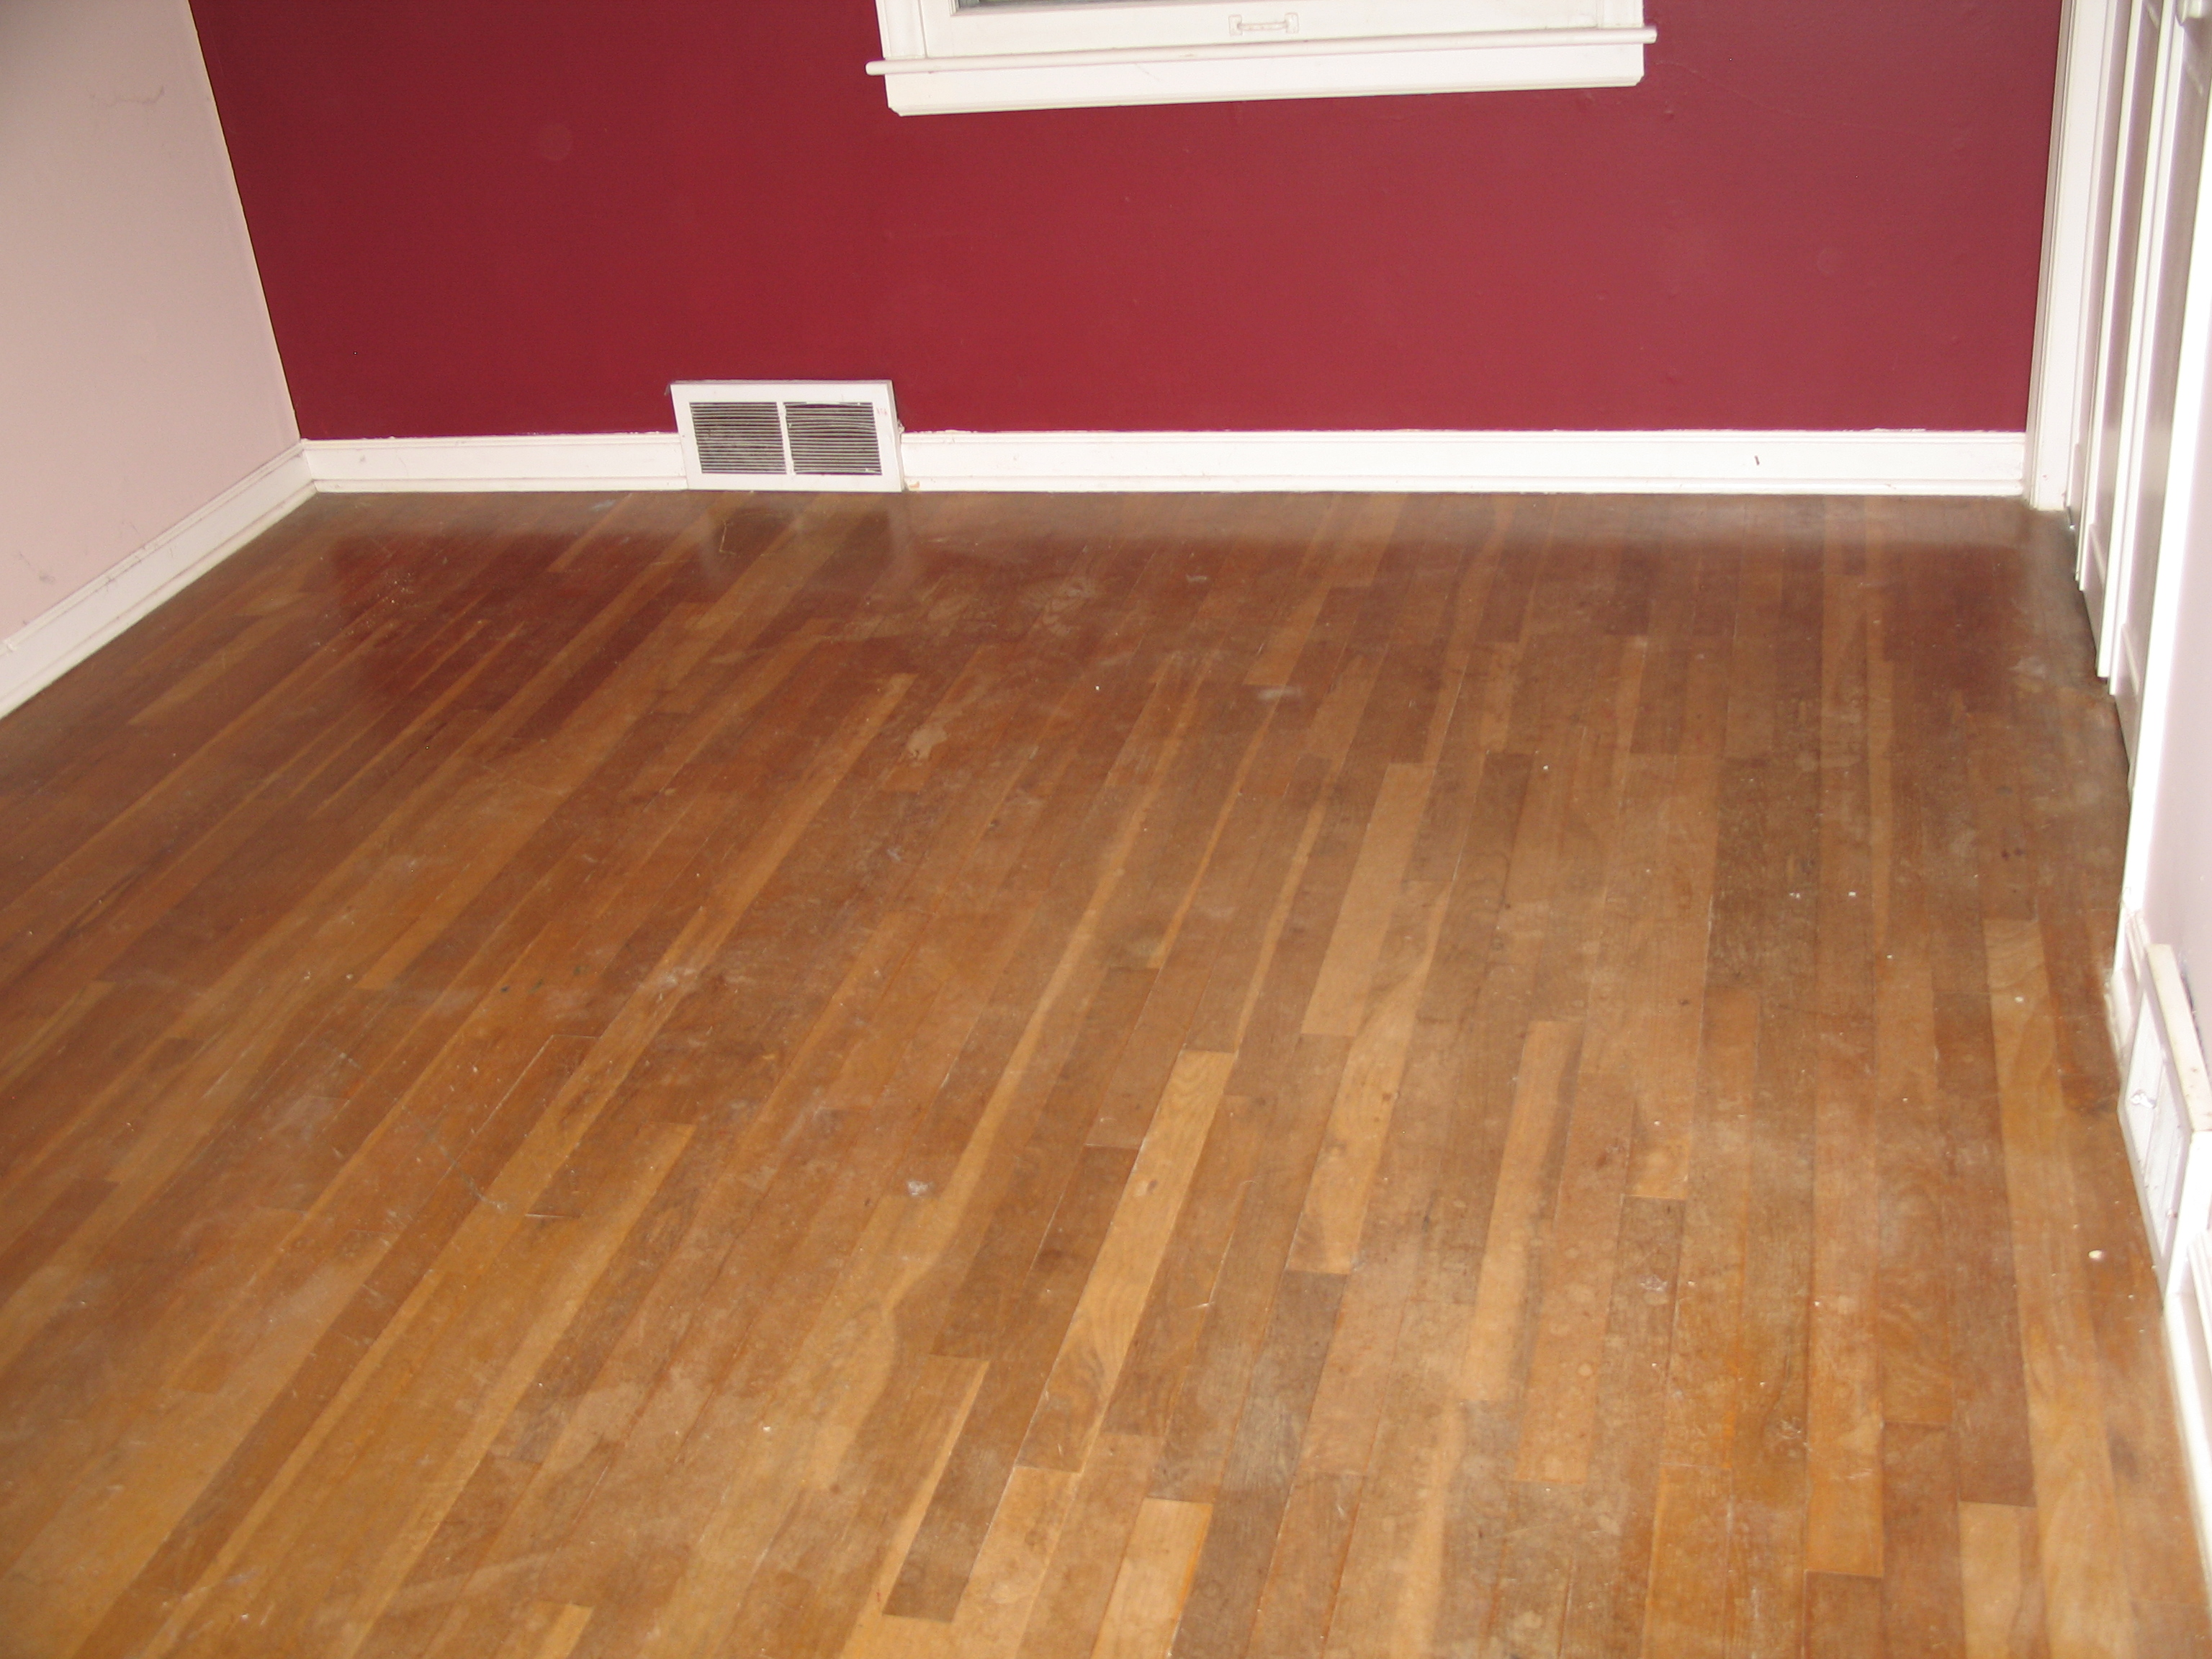 Hardwood floor refinishers flooring ideas home for Wood floor refinishing